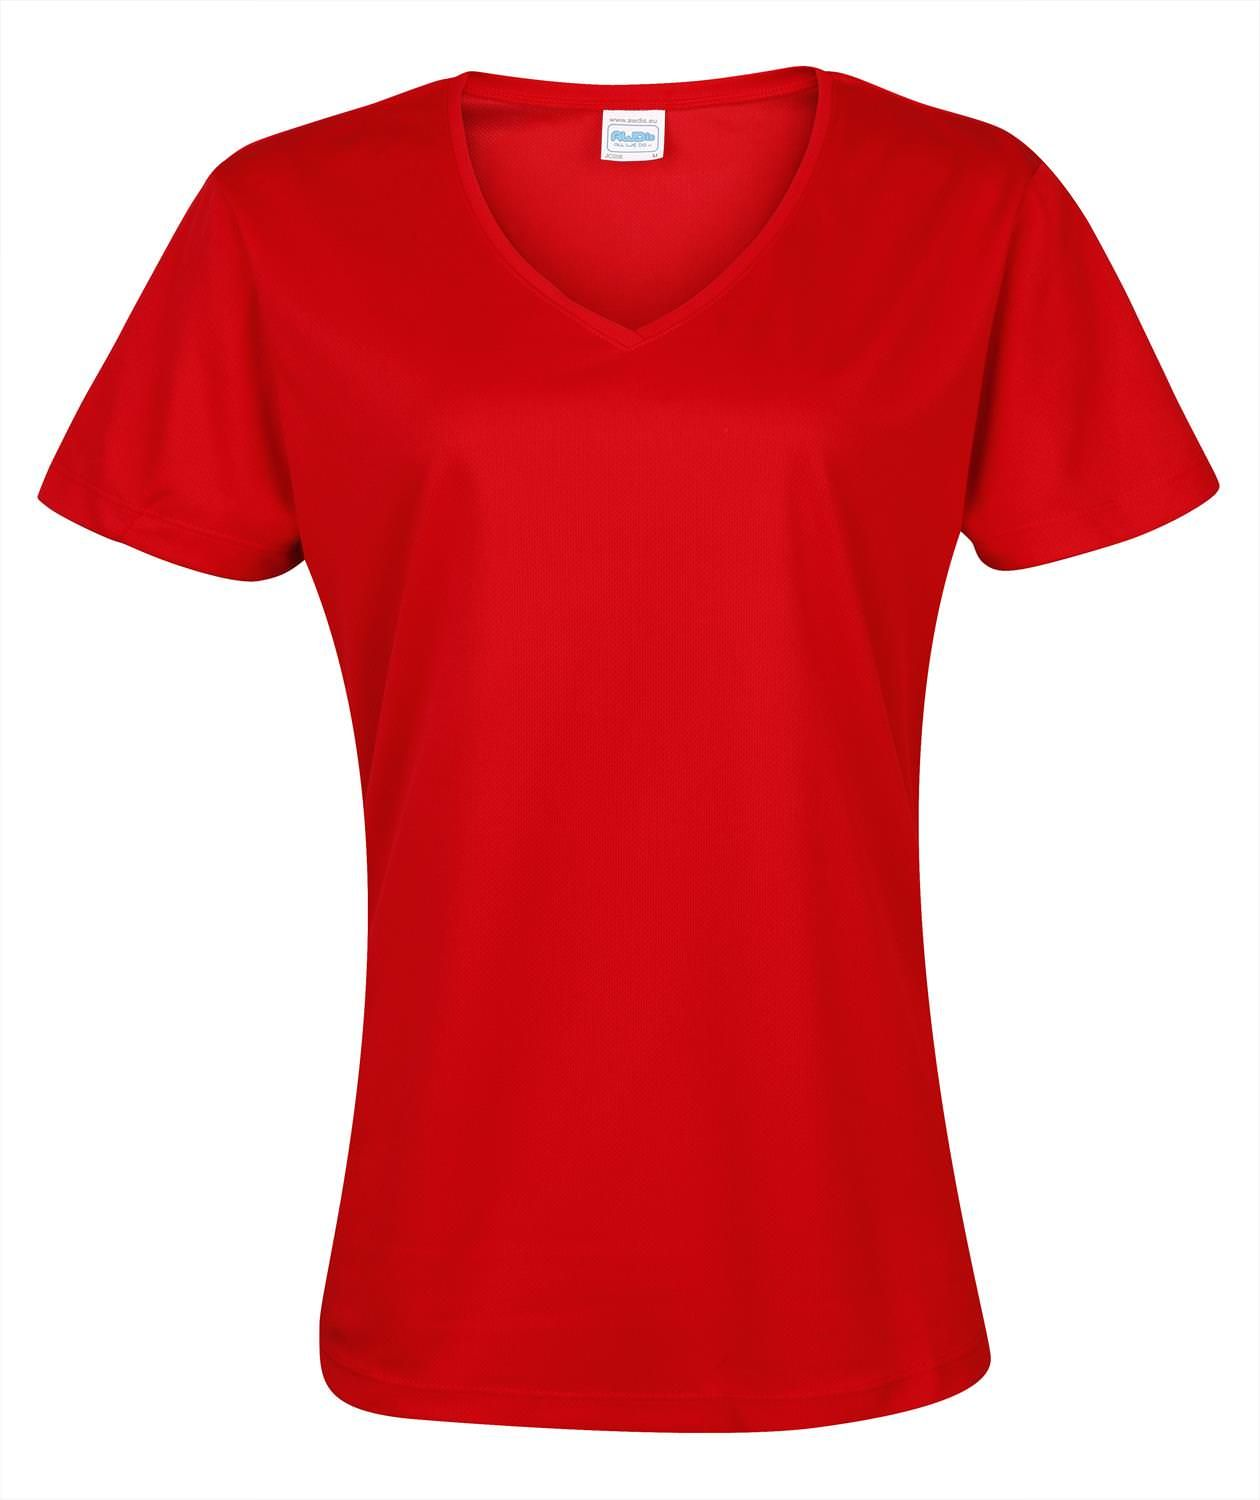 Women S V Neck Cooling T Shirt Apos Women Neck V Neck Women